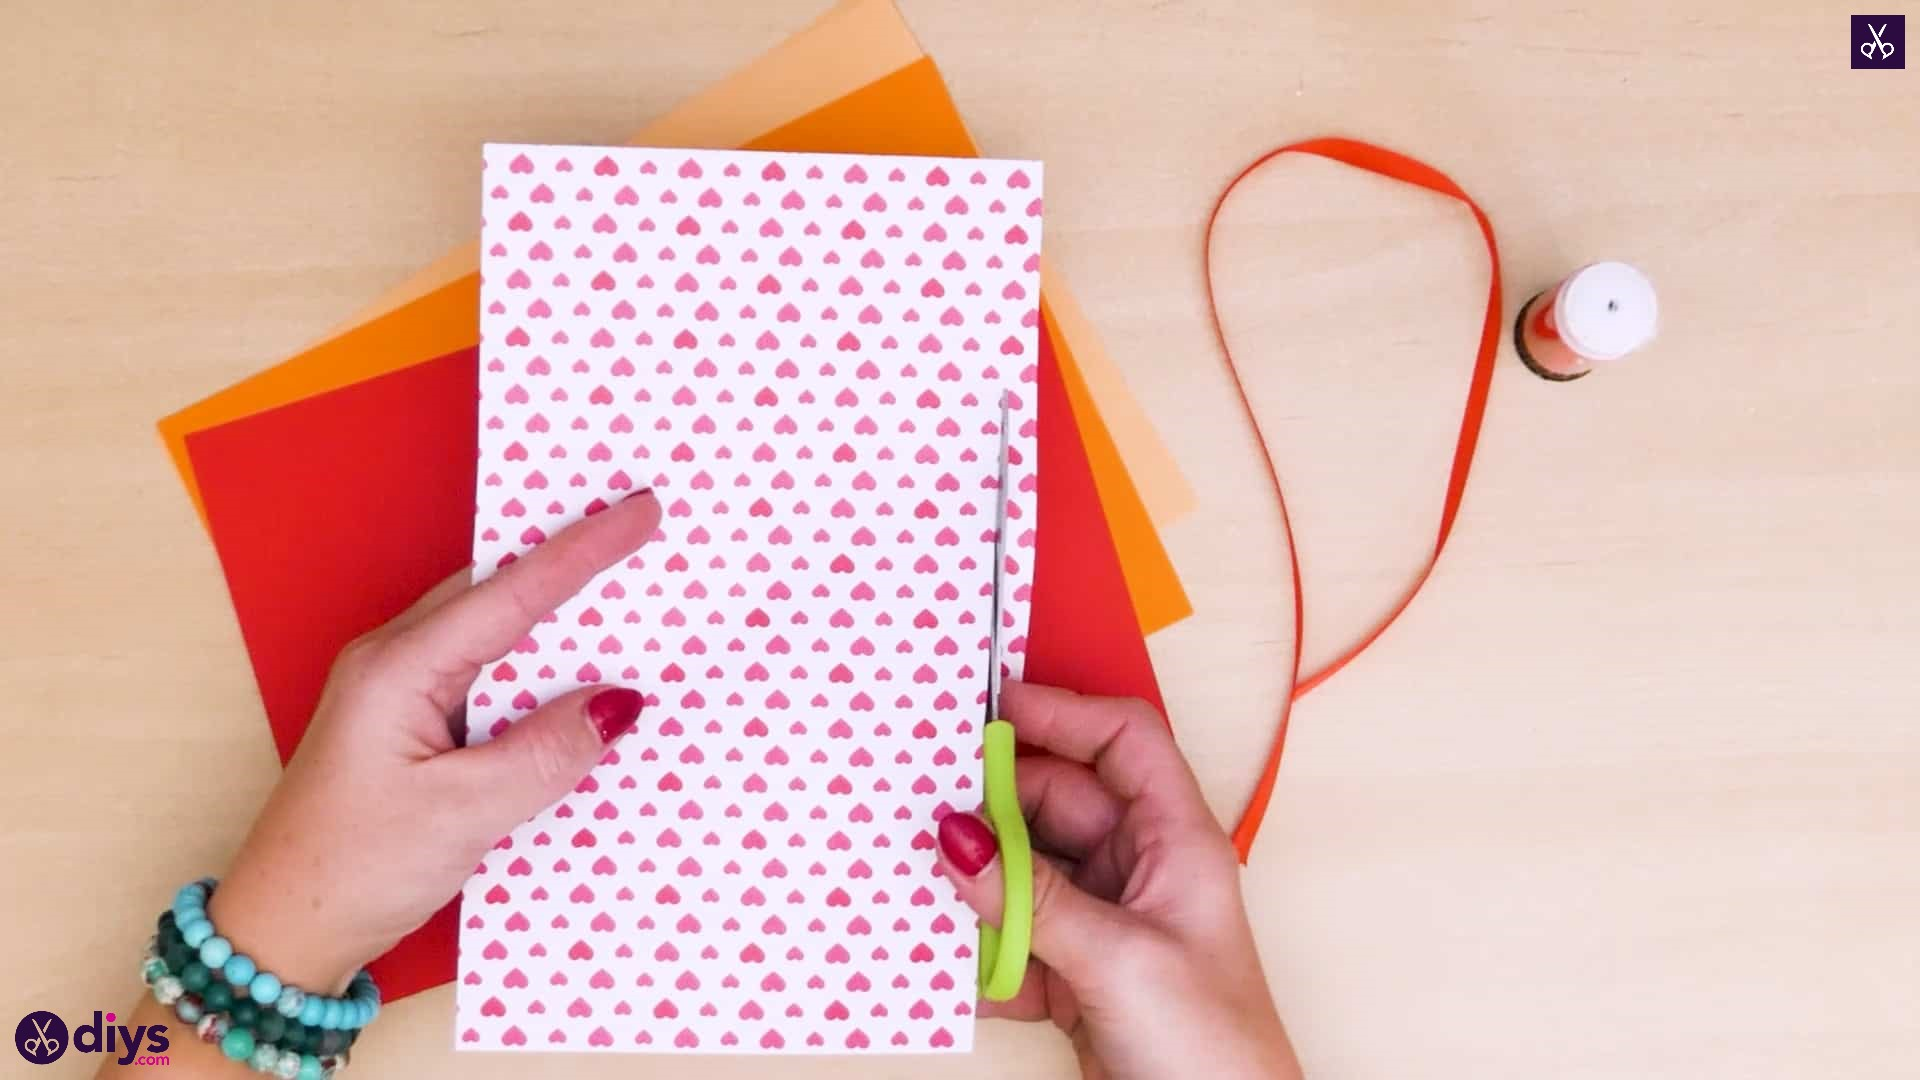 Diy ribbon heart step 2